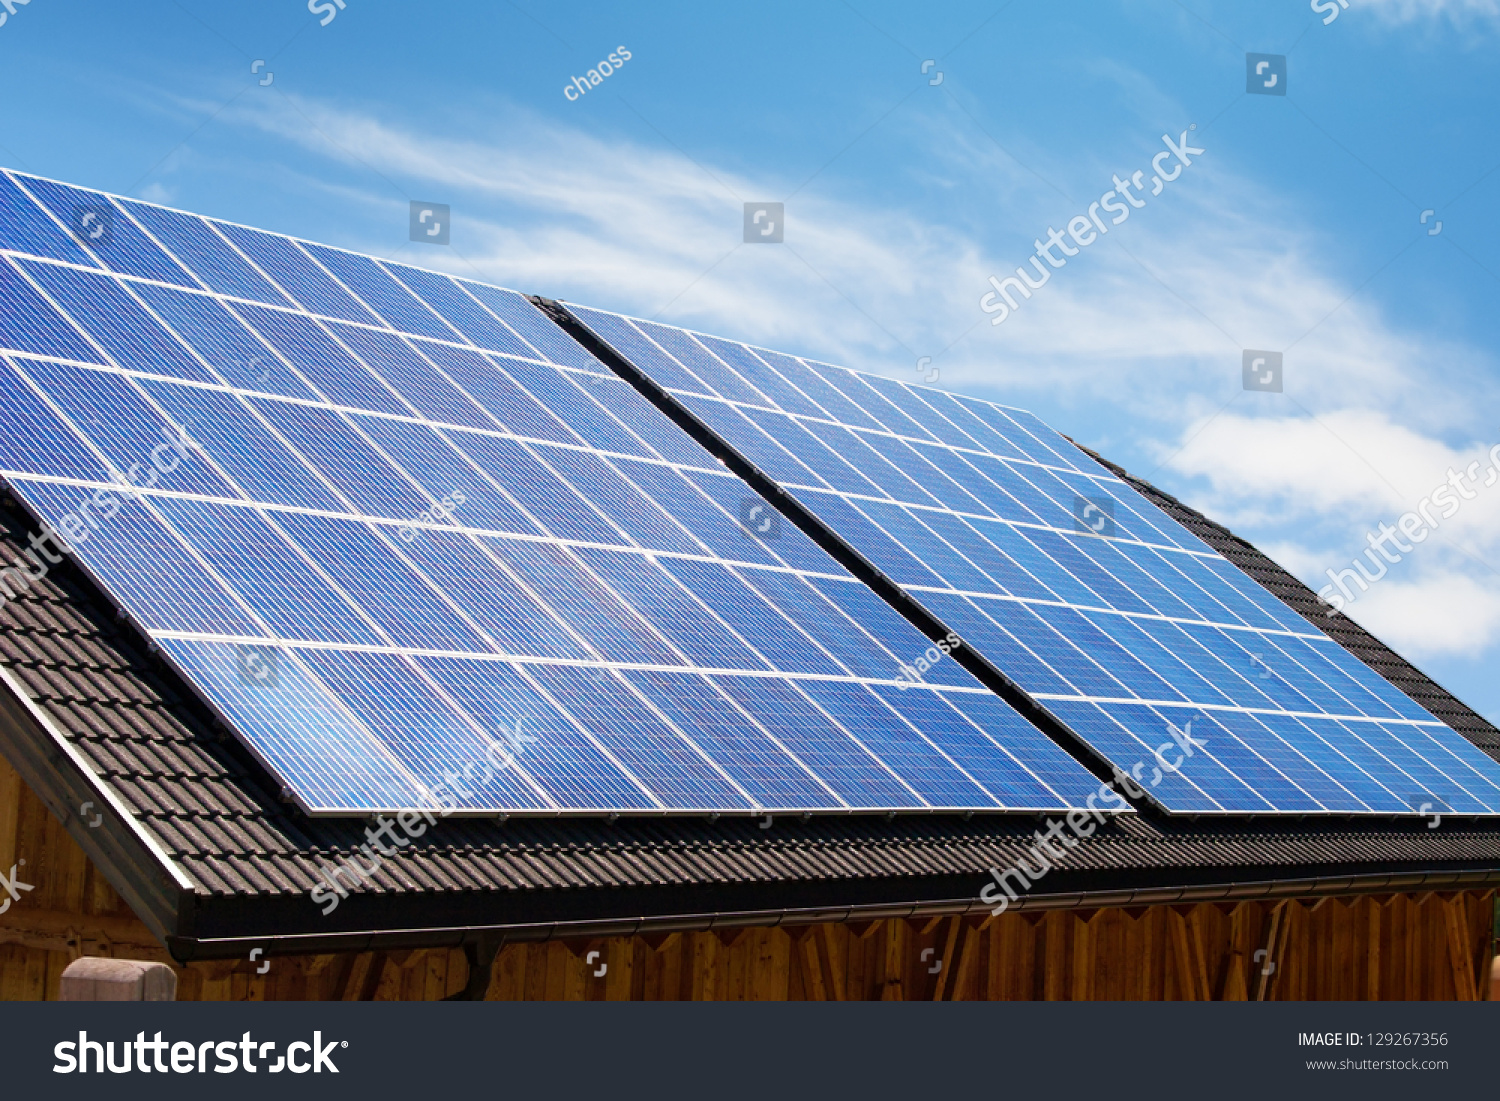 Modern Solar Panels On House Roof In Europe Stock Photo